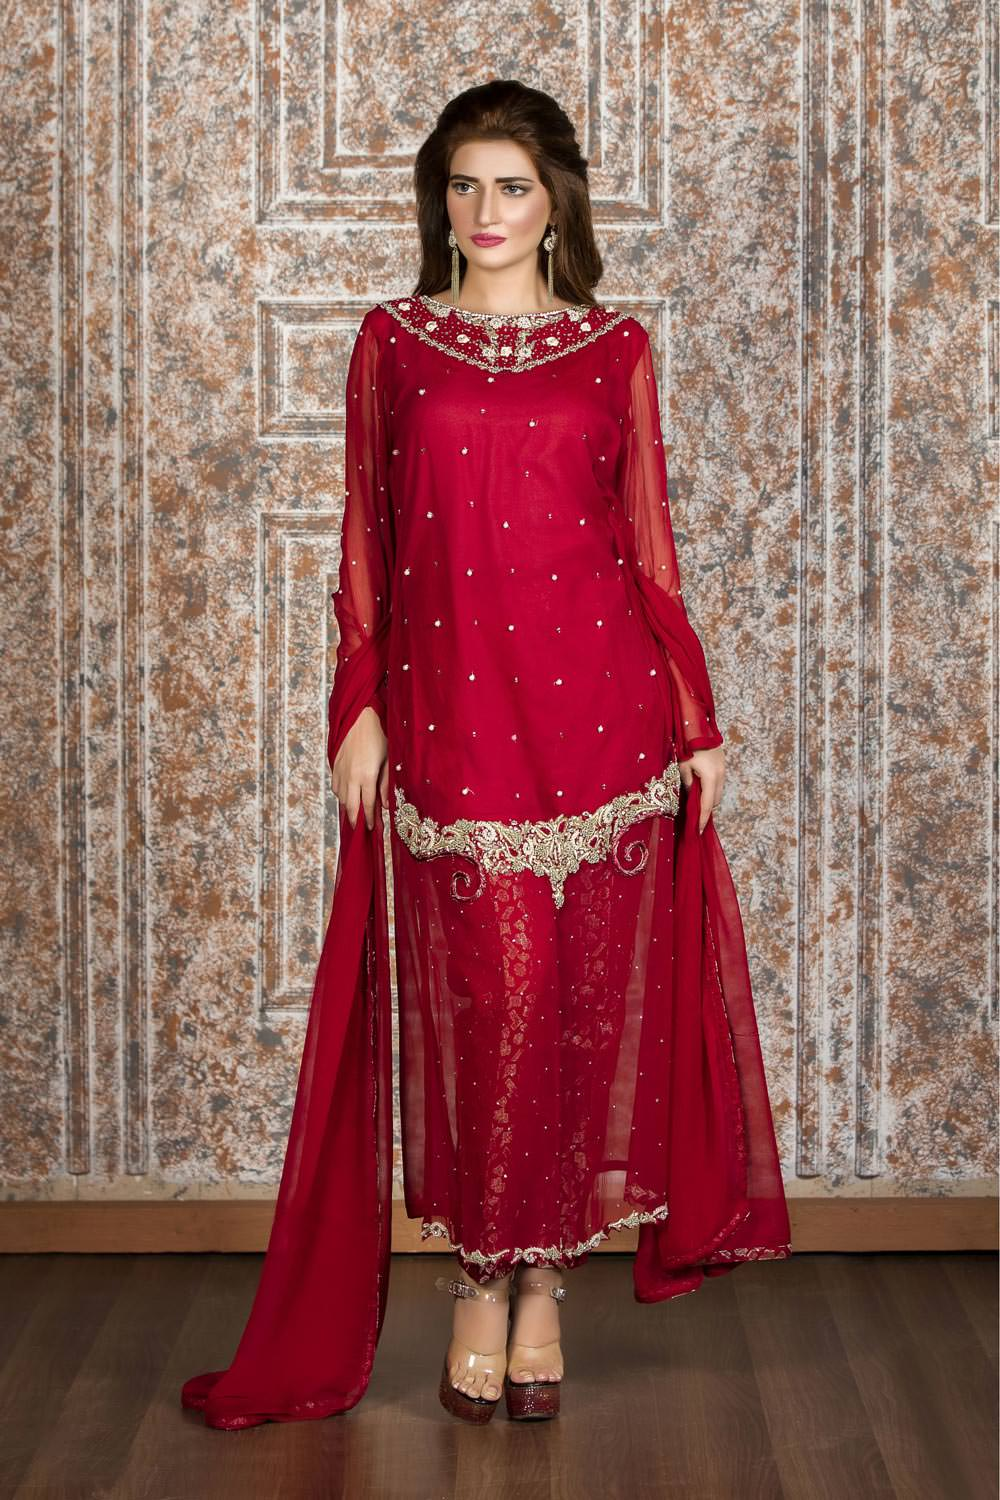 Pakistani ladies clothes online